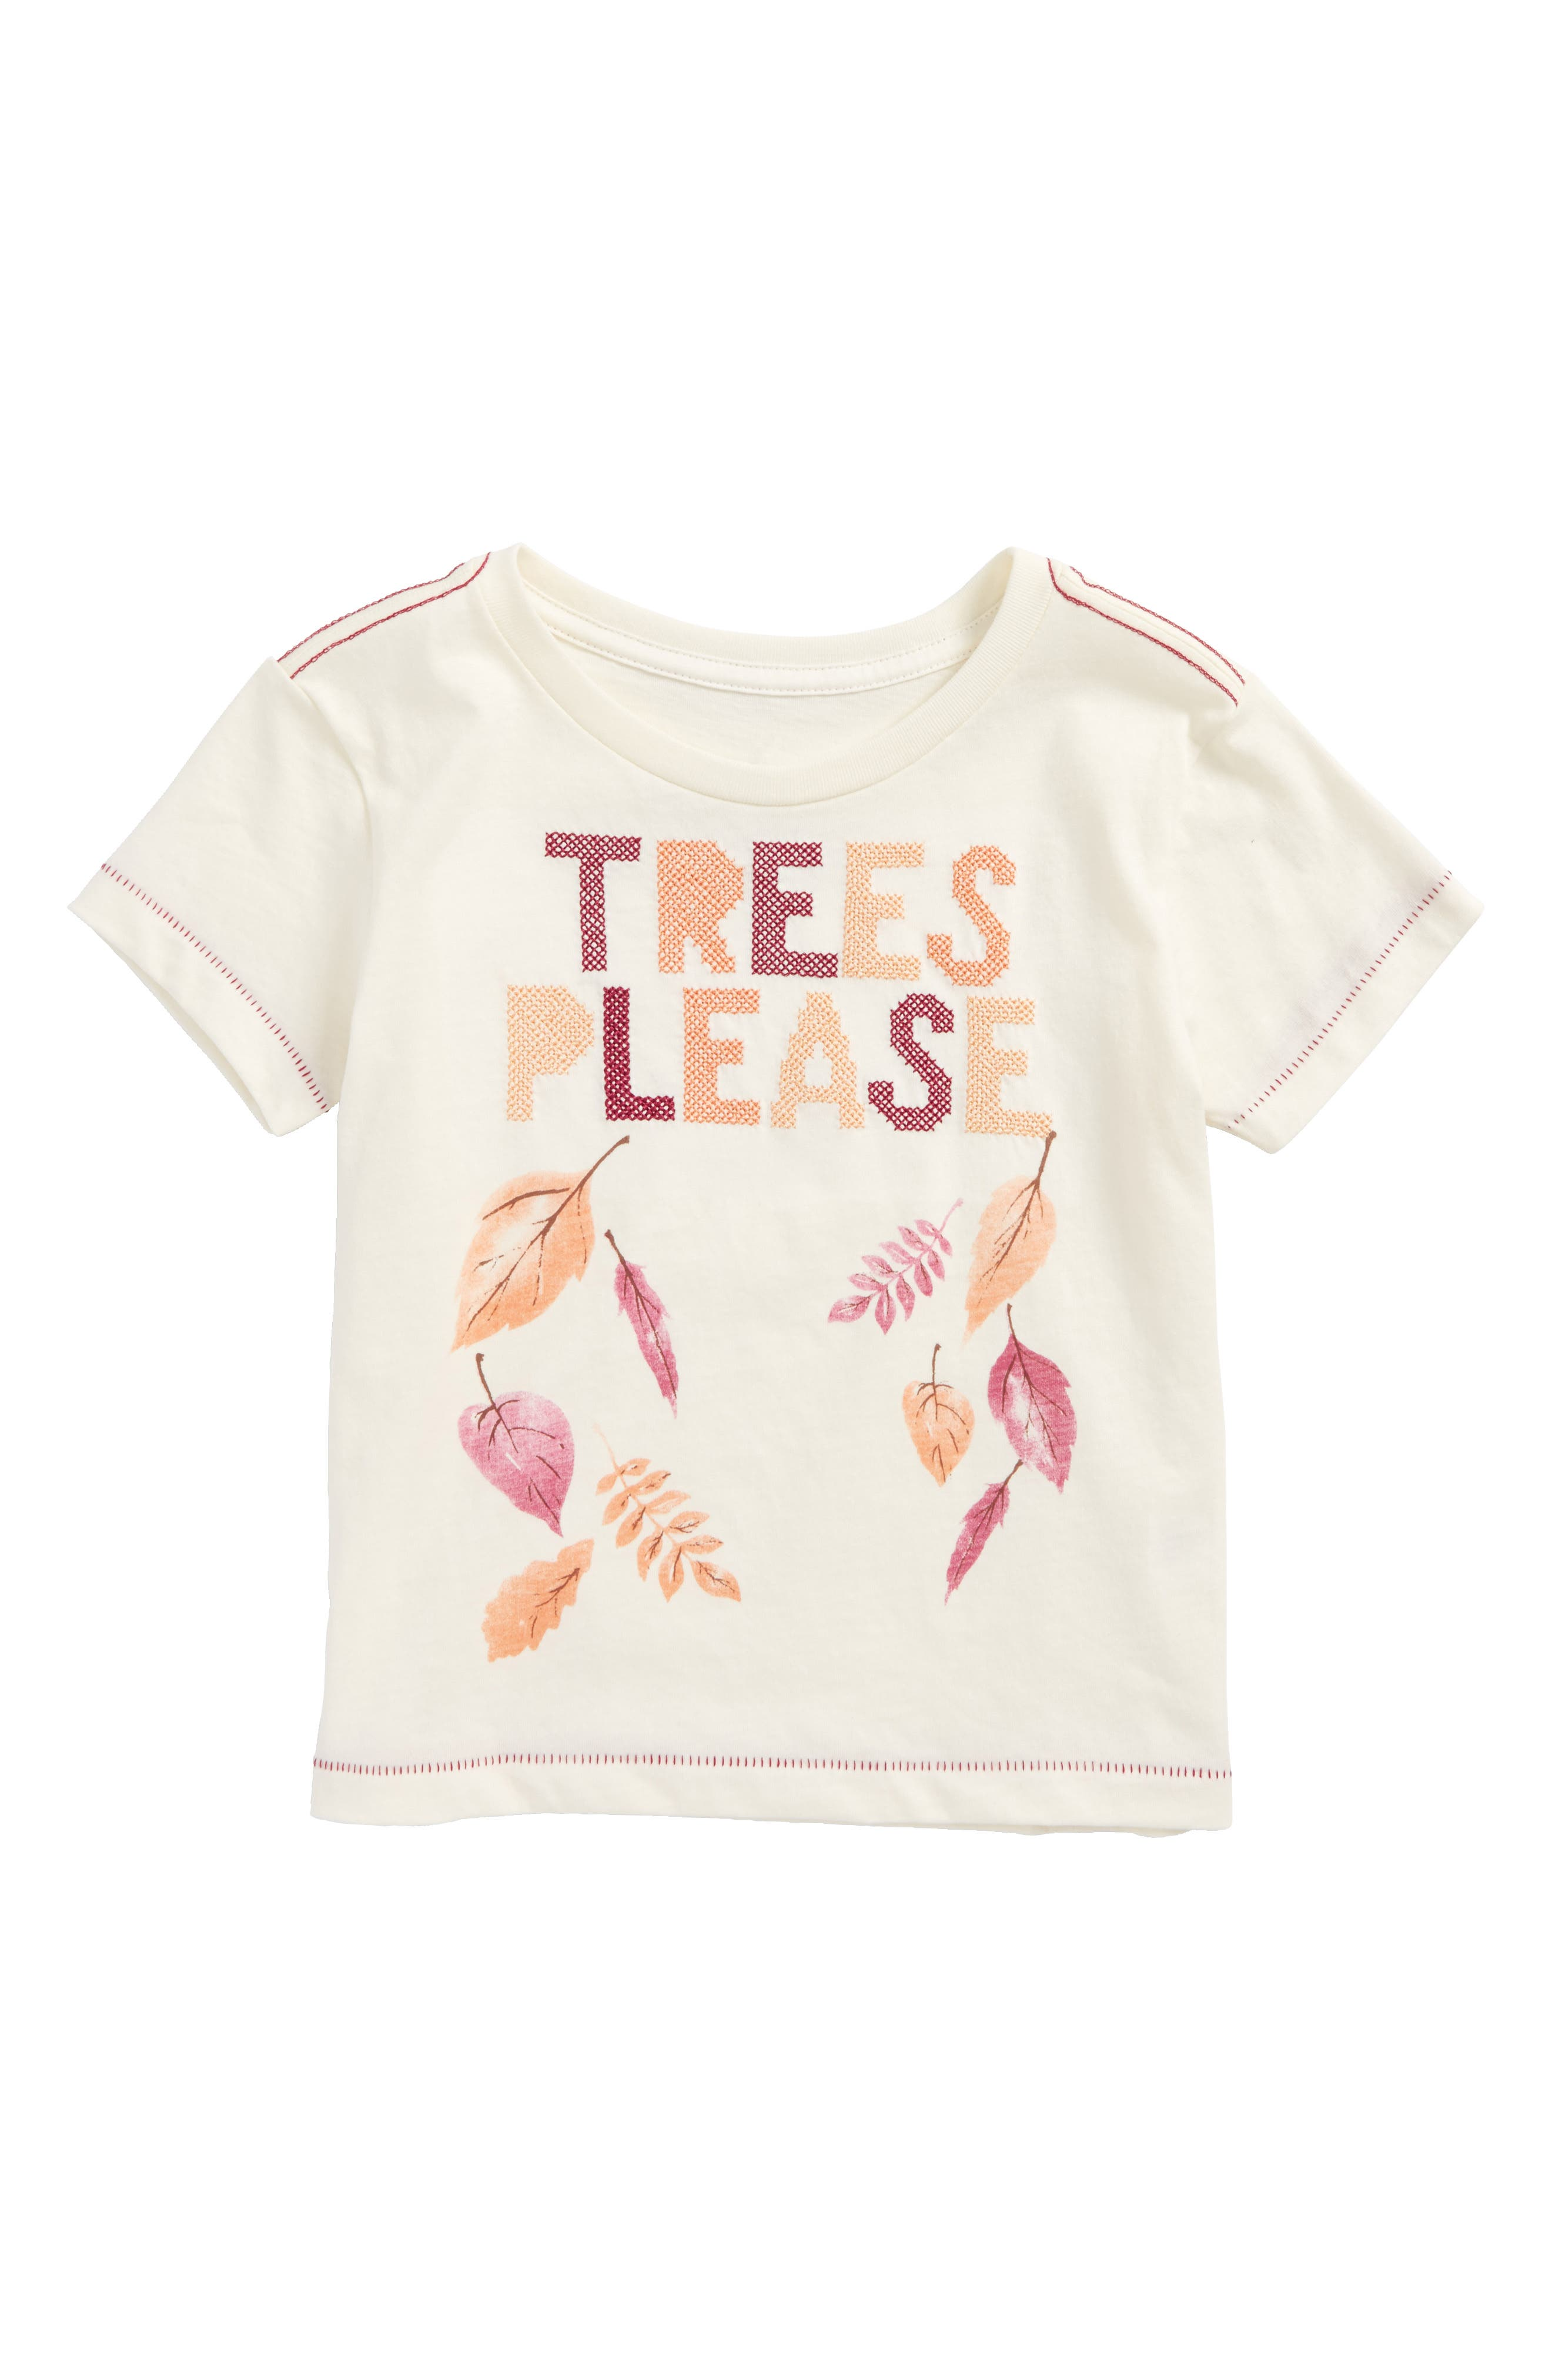 Trees Please Embroidered Graphic Tee,                         Main,                         color, Ivory